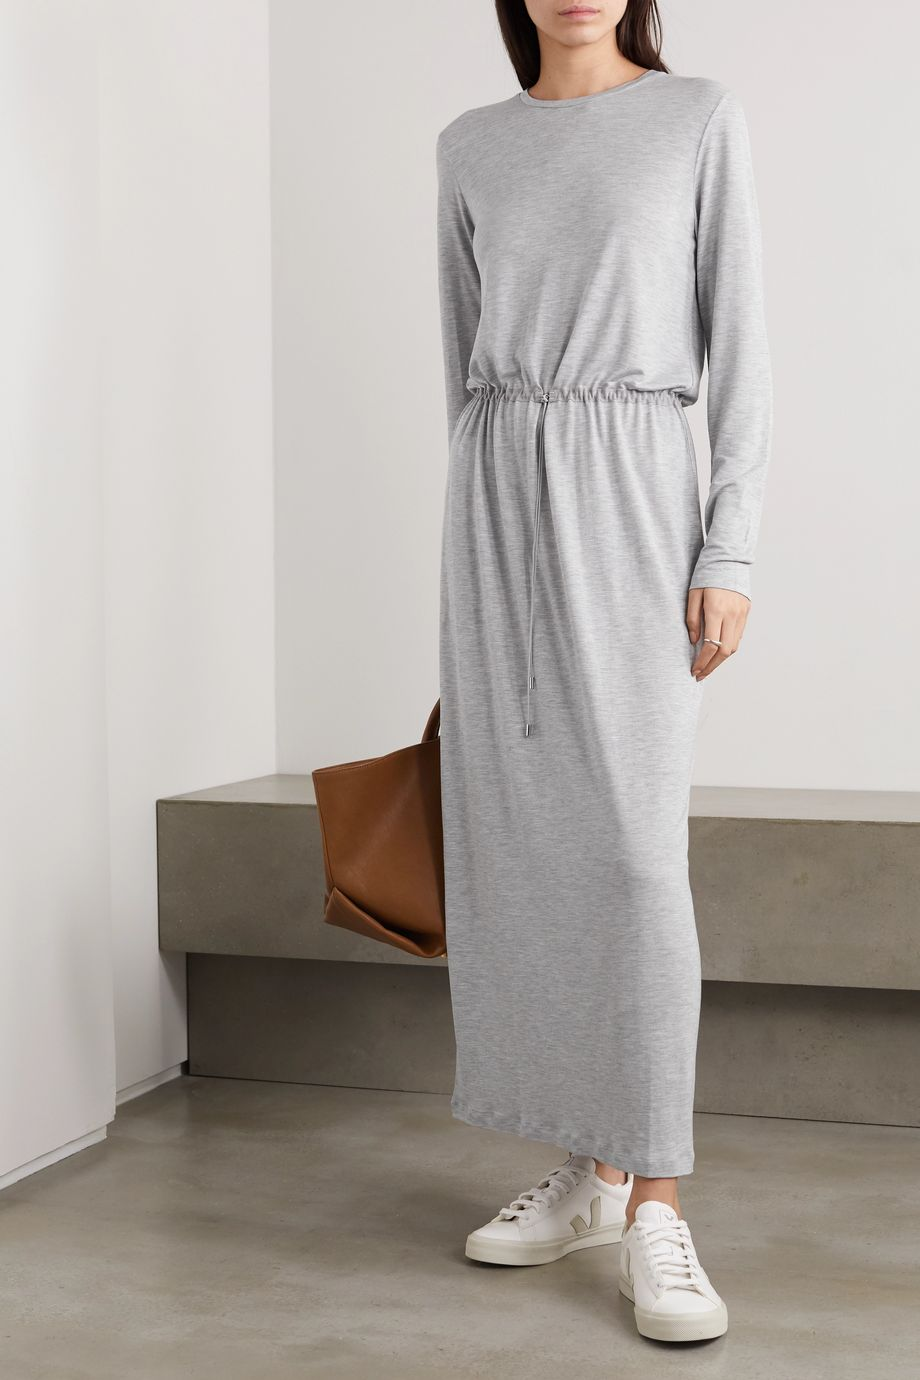 Ninety Percent + NET SUSTAIN mélange Tencel maxi dress